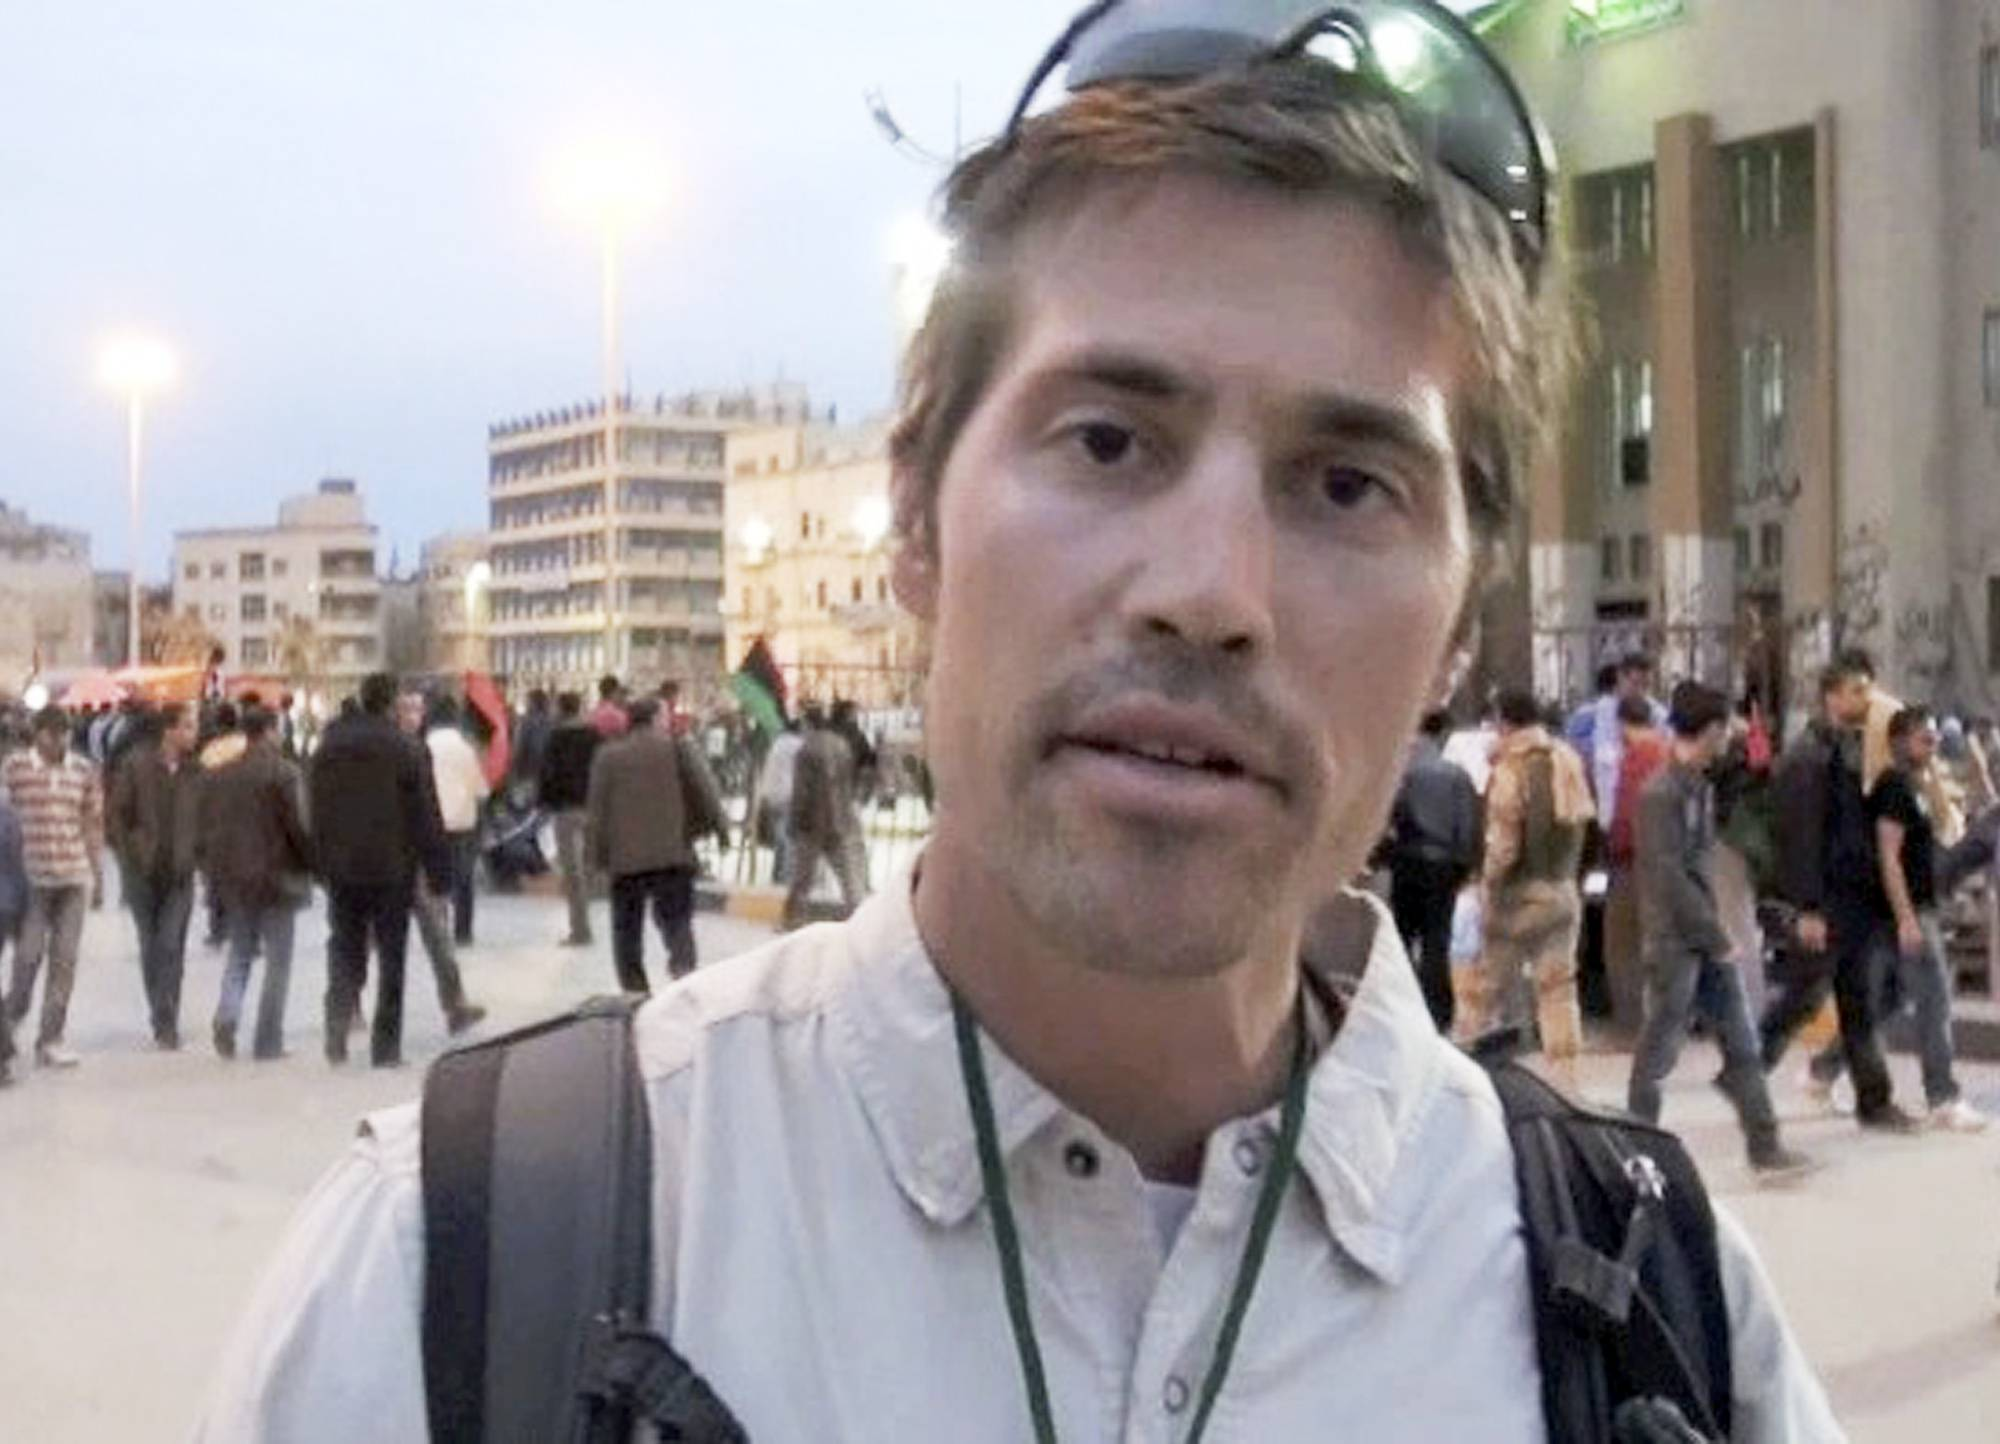 James Foley of Rochester, N.H., a freelance contributor for GlobalPost, in Benghazi, Libya. In a horrifying act of revenge for U.S. airstrikes in northern Iraq, militants with the Islamic State extremist group have beheaded Foley — and are threatening to kill another hostage, U.S. officials say.